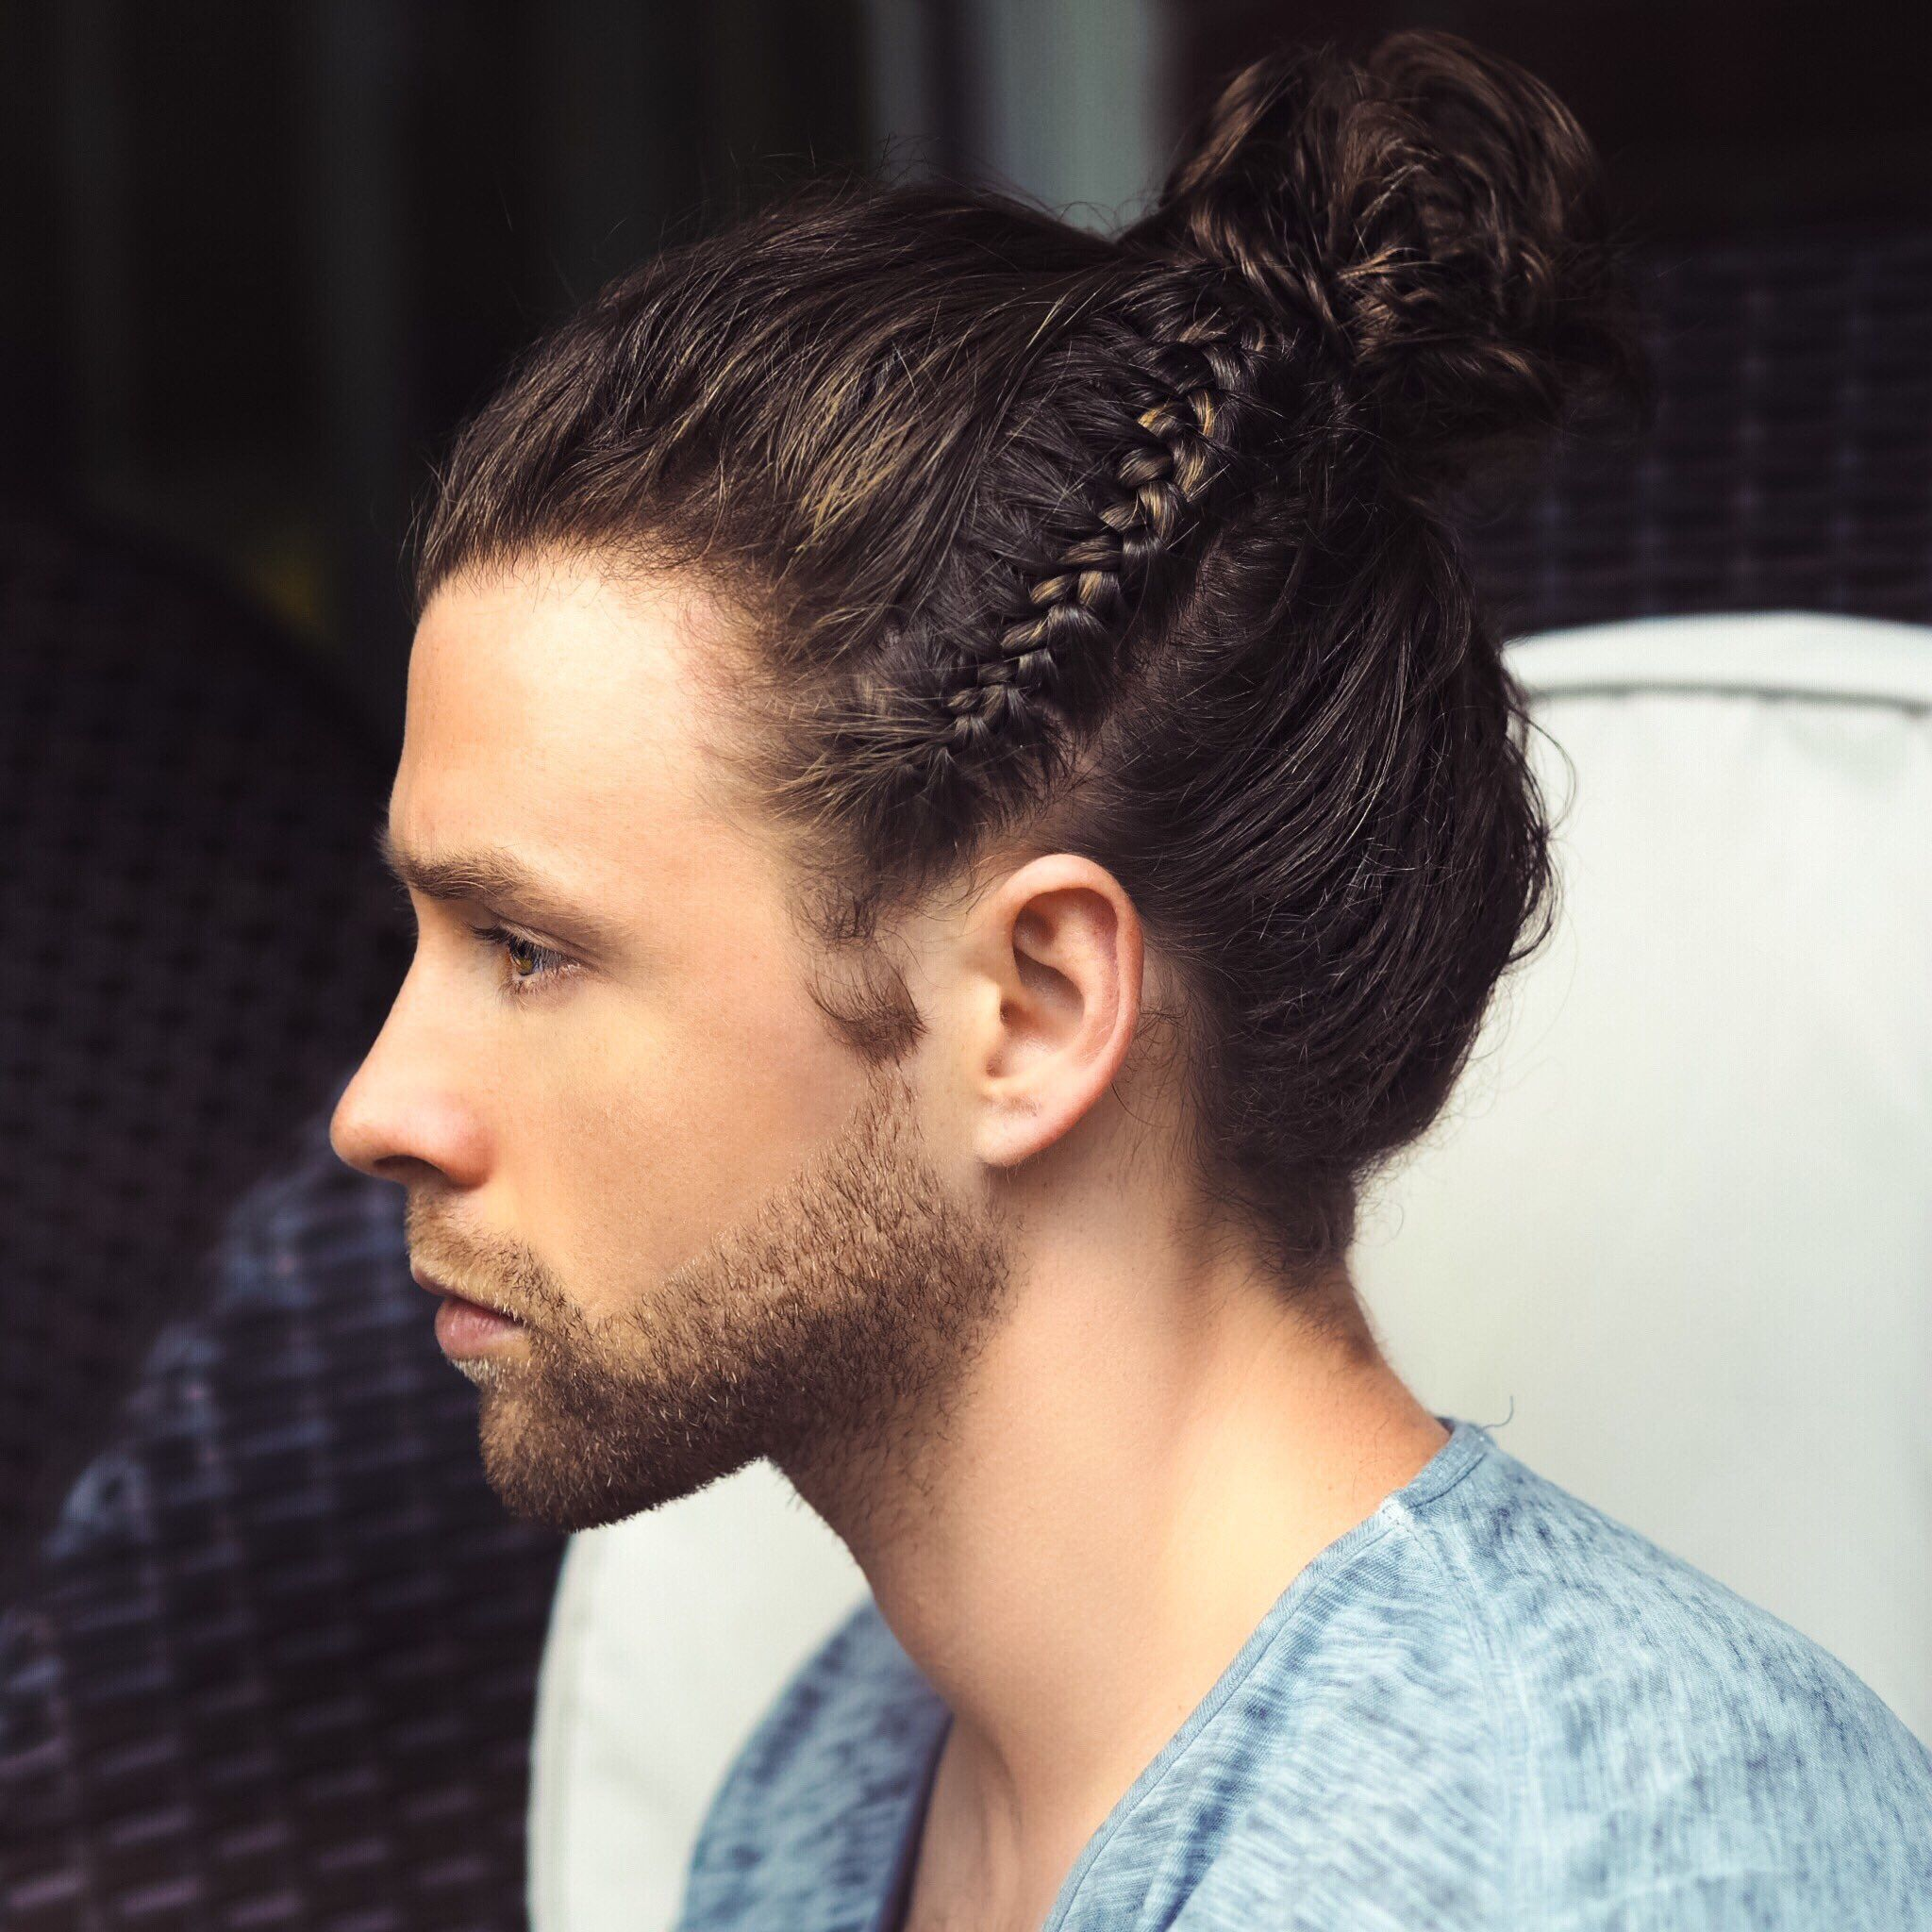 Pin By Abdelrhman Ayman On Barbering Inspiration Mens Braids Hairstyles Hair Styles Long Hair Styles